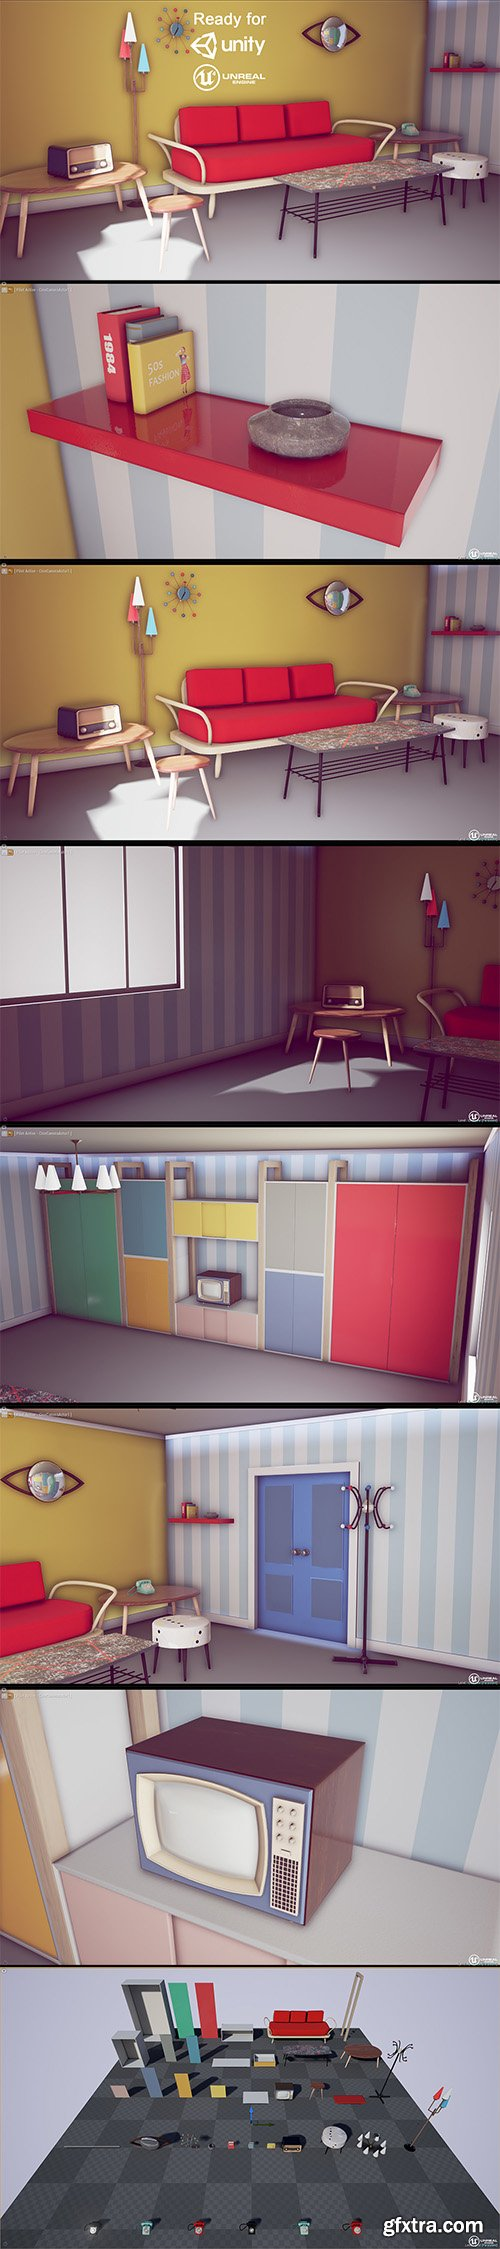 Cubebrush - 50s Vintage Furniture Pack